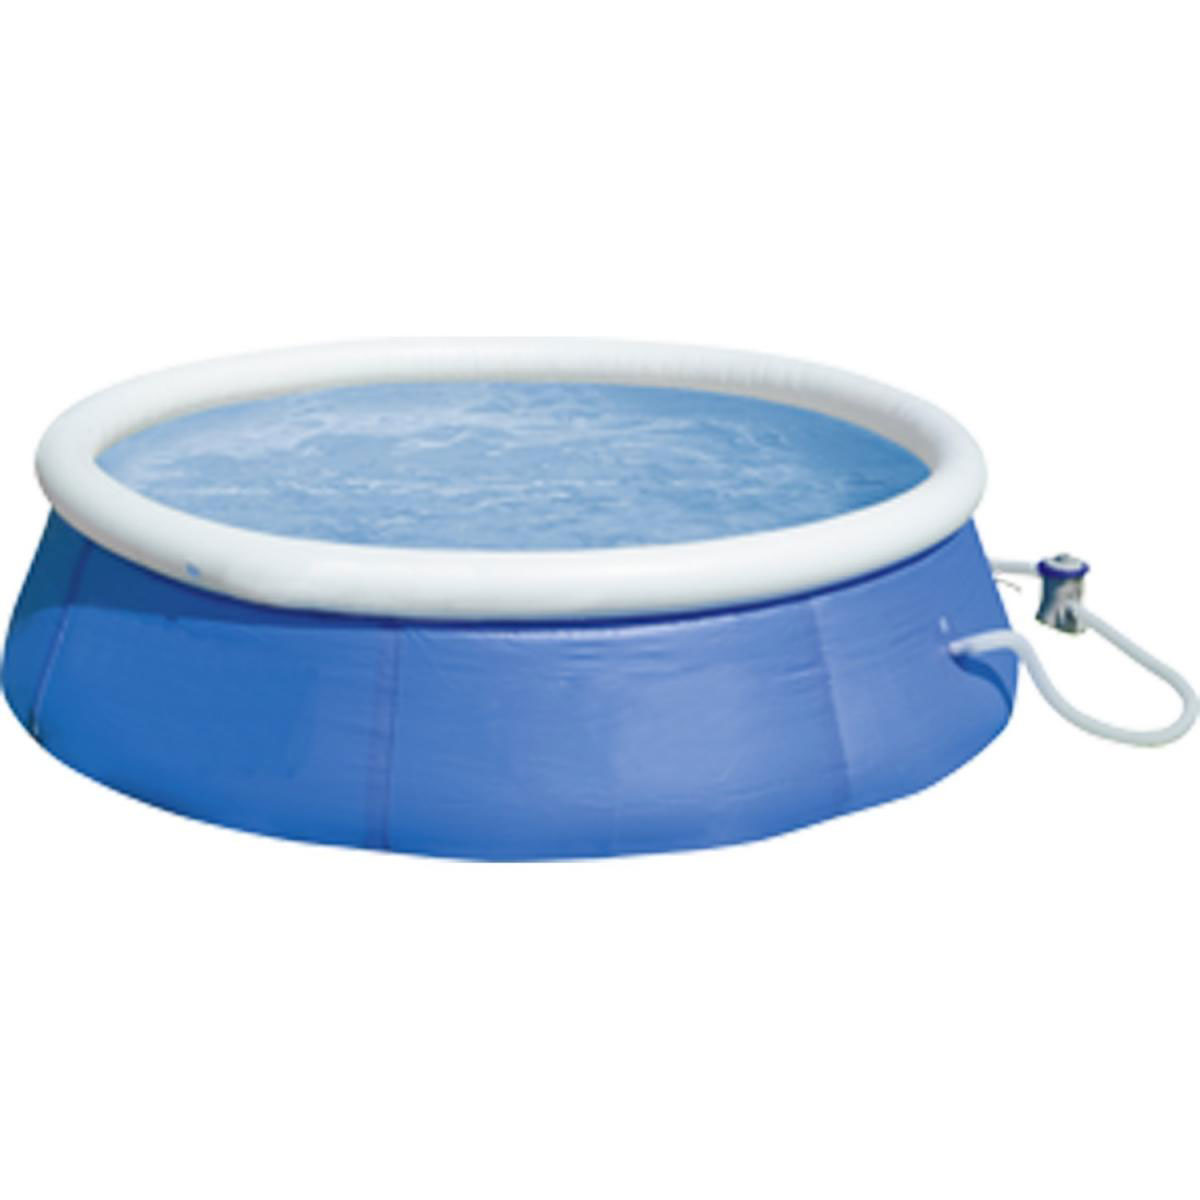 Pools und Schwimmbecken - Quick Up Pool, 366cm  - Onlineshop Hellweg